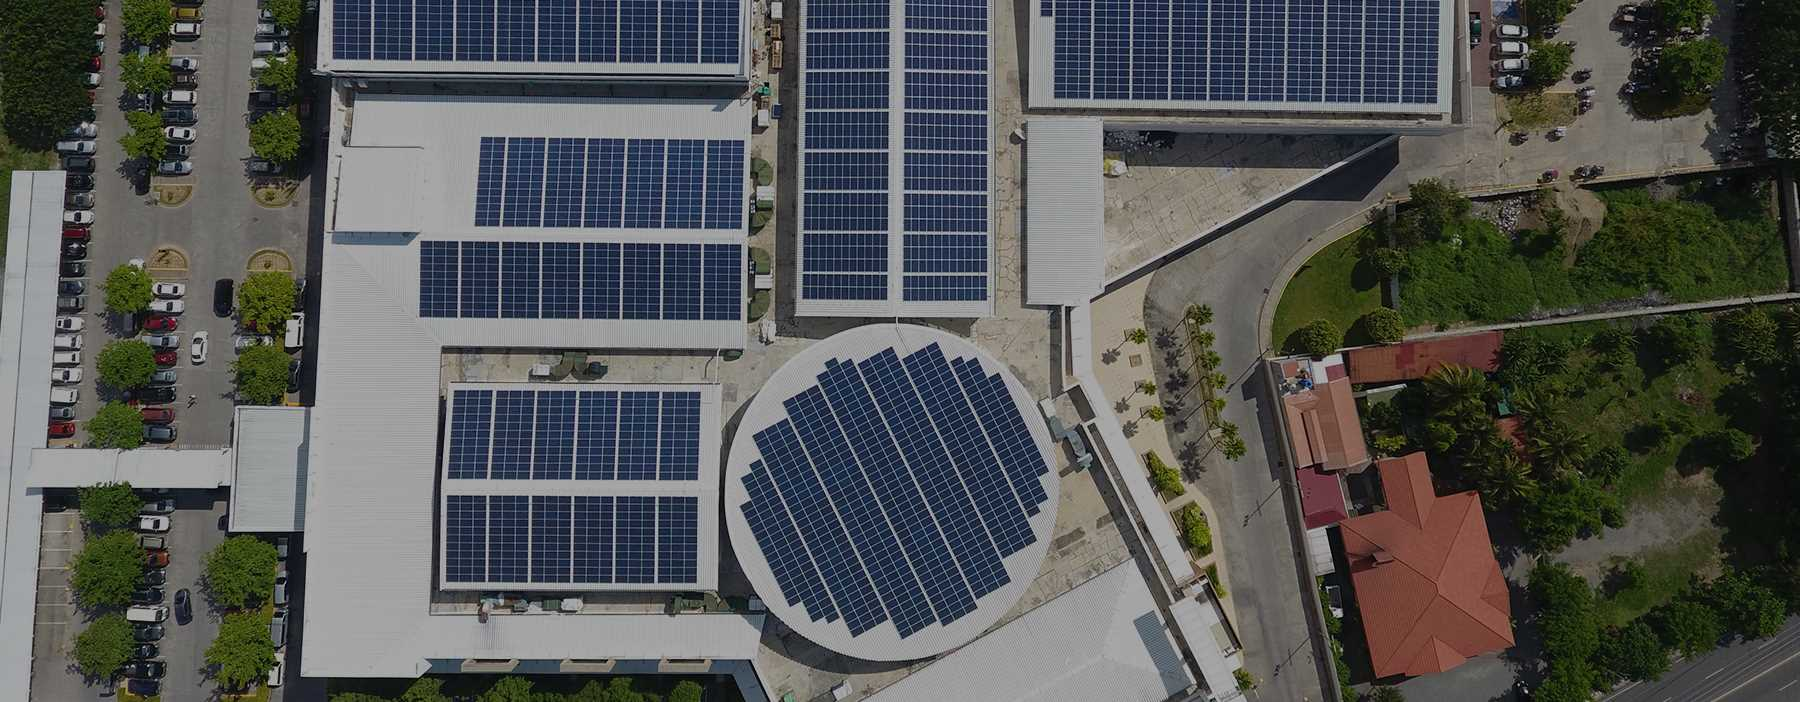 Commercial Solar Power System Installation in Australia